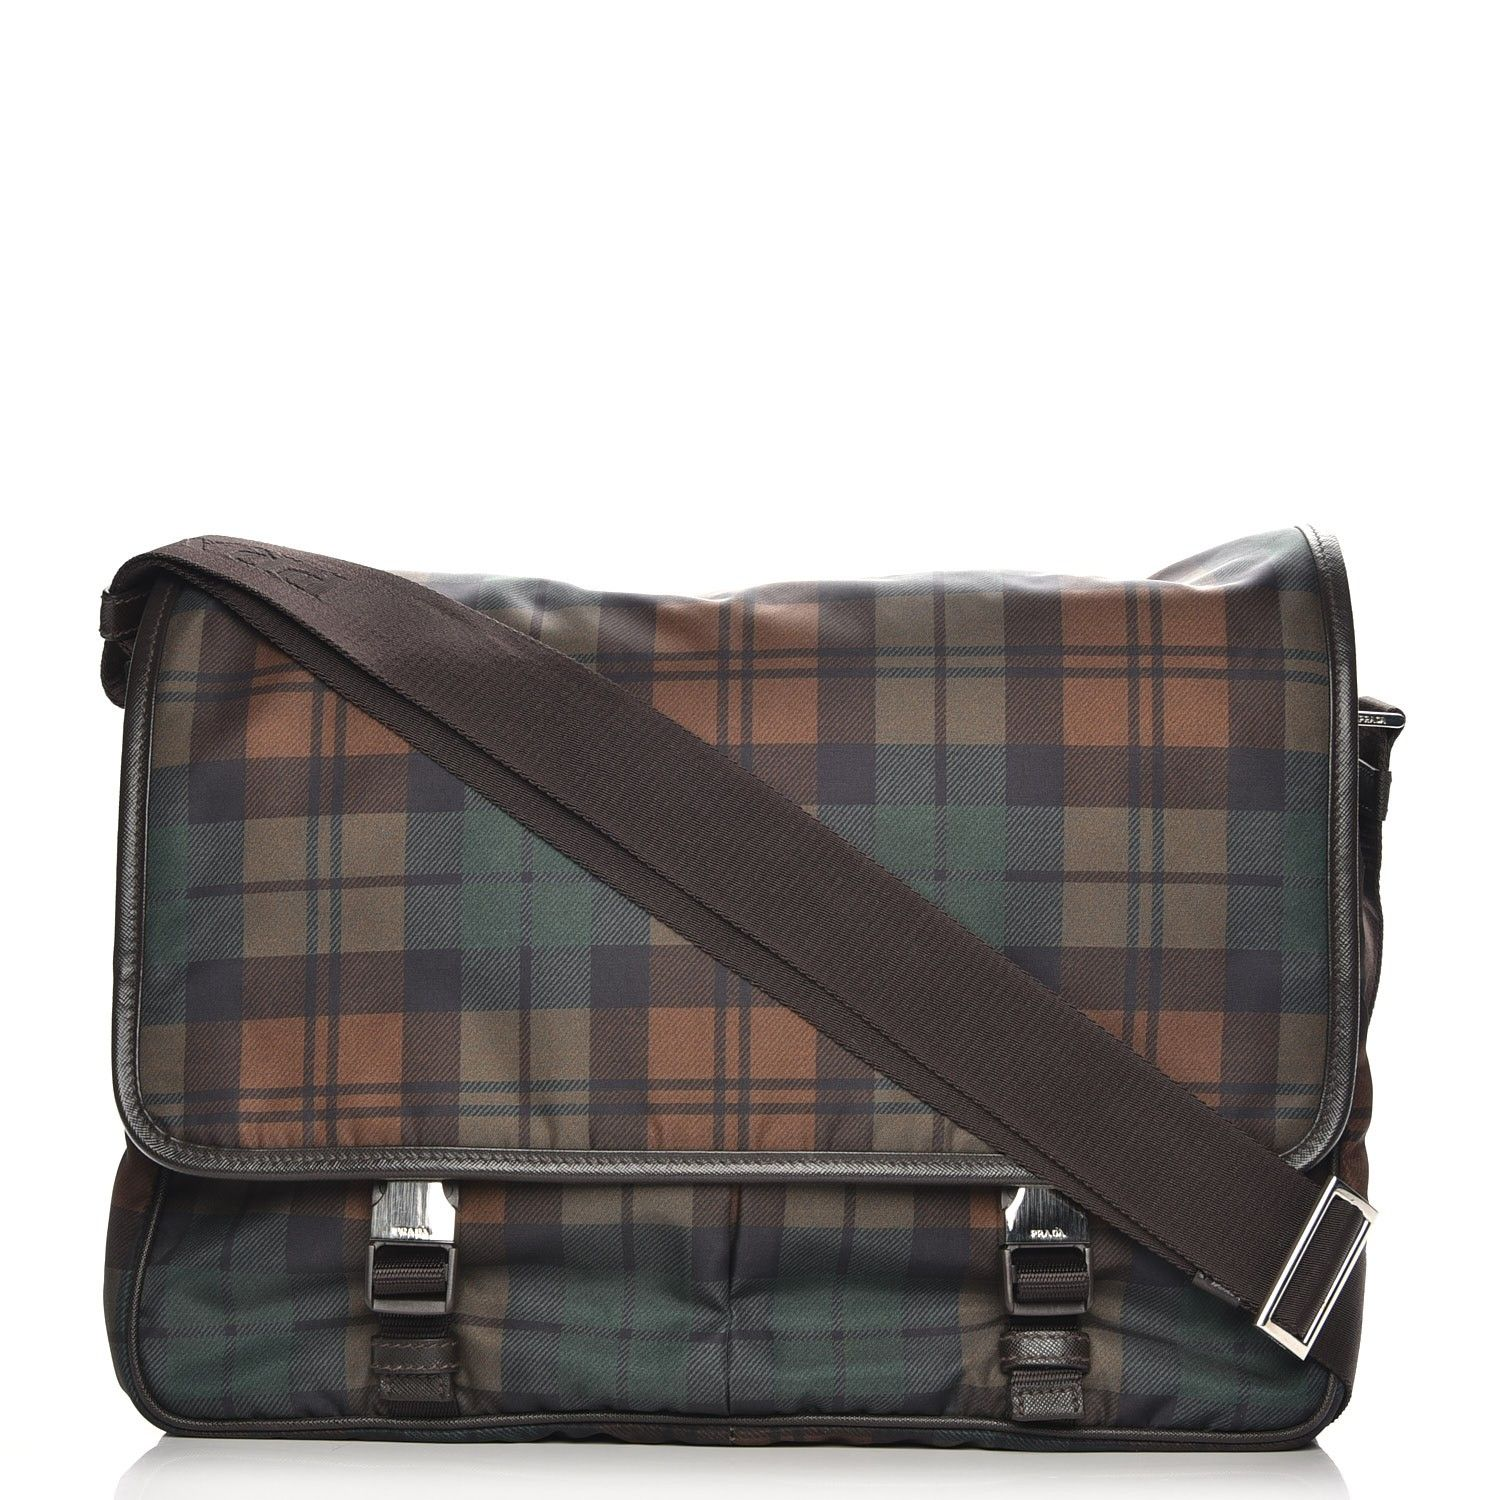 43274bff81 This is an authentic PRADA Tessuto Scozzes Saffiano Messenger Bag in Brown  Watch. This chic